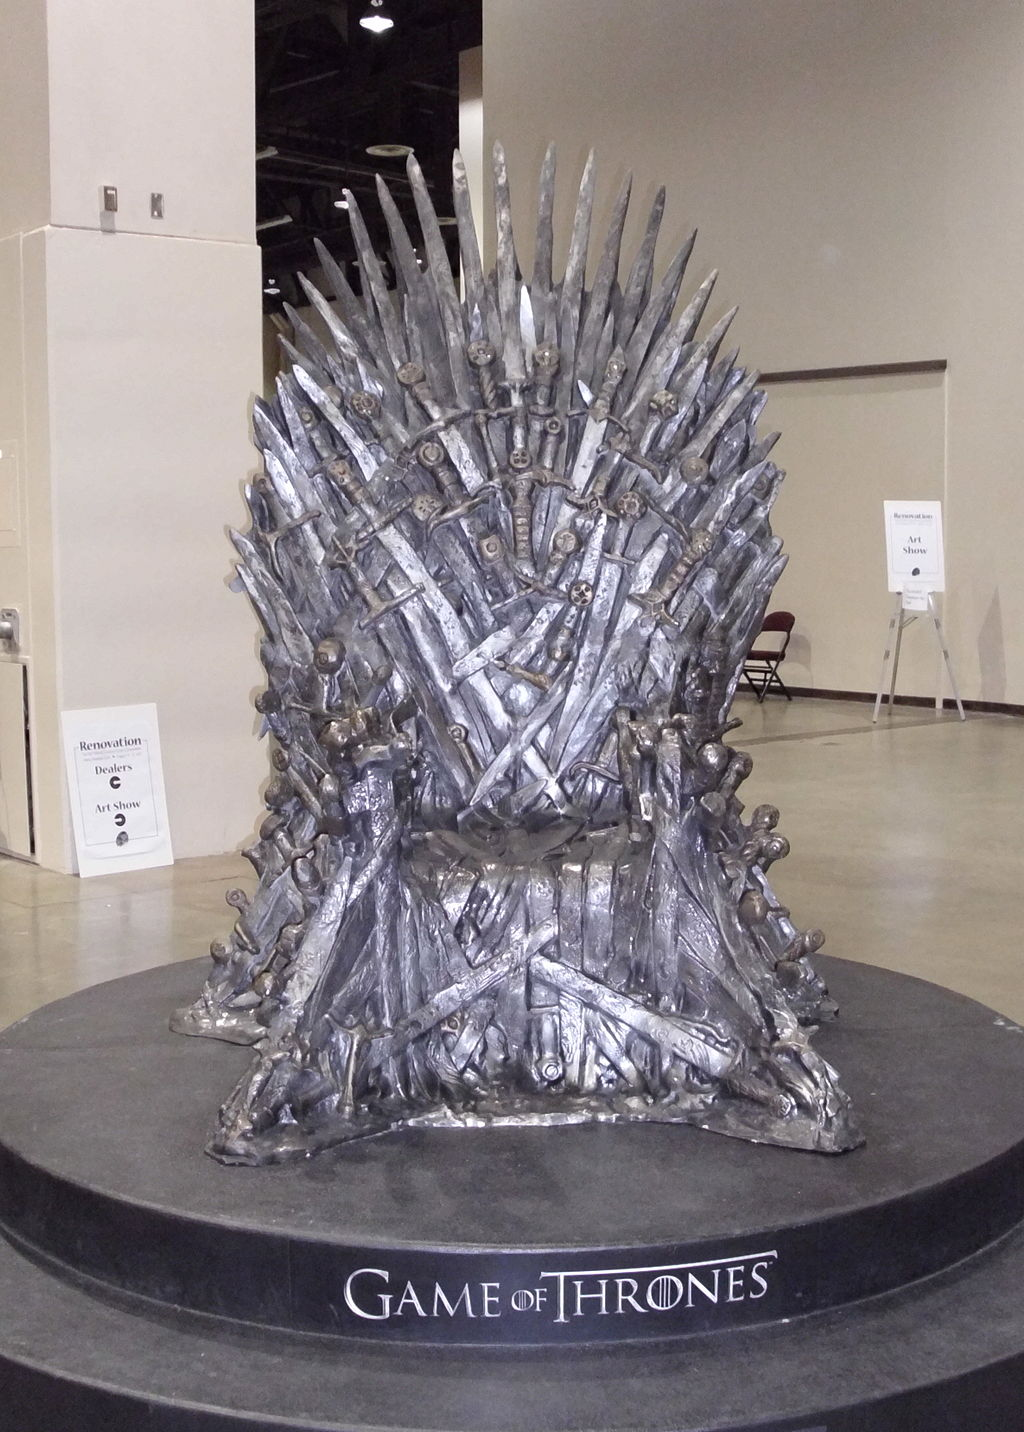 game of throne chair fishing accessories for sale hbo is just taunting george r martin fans at this point